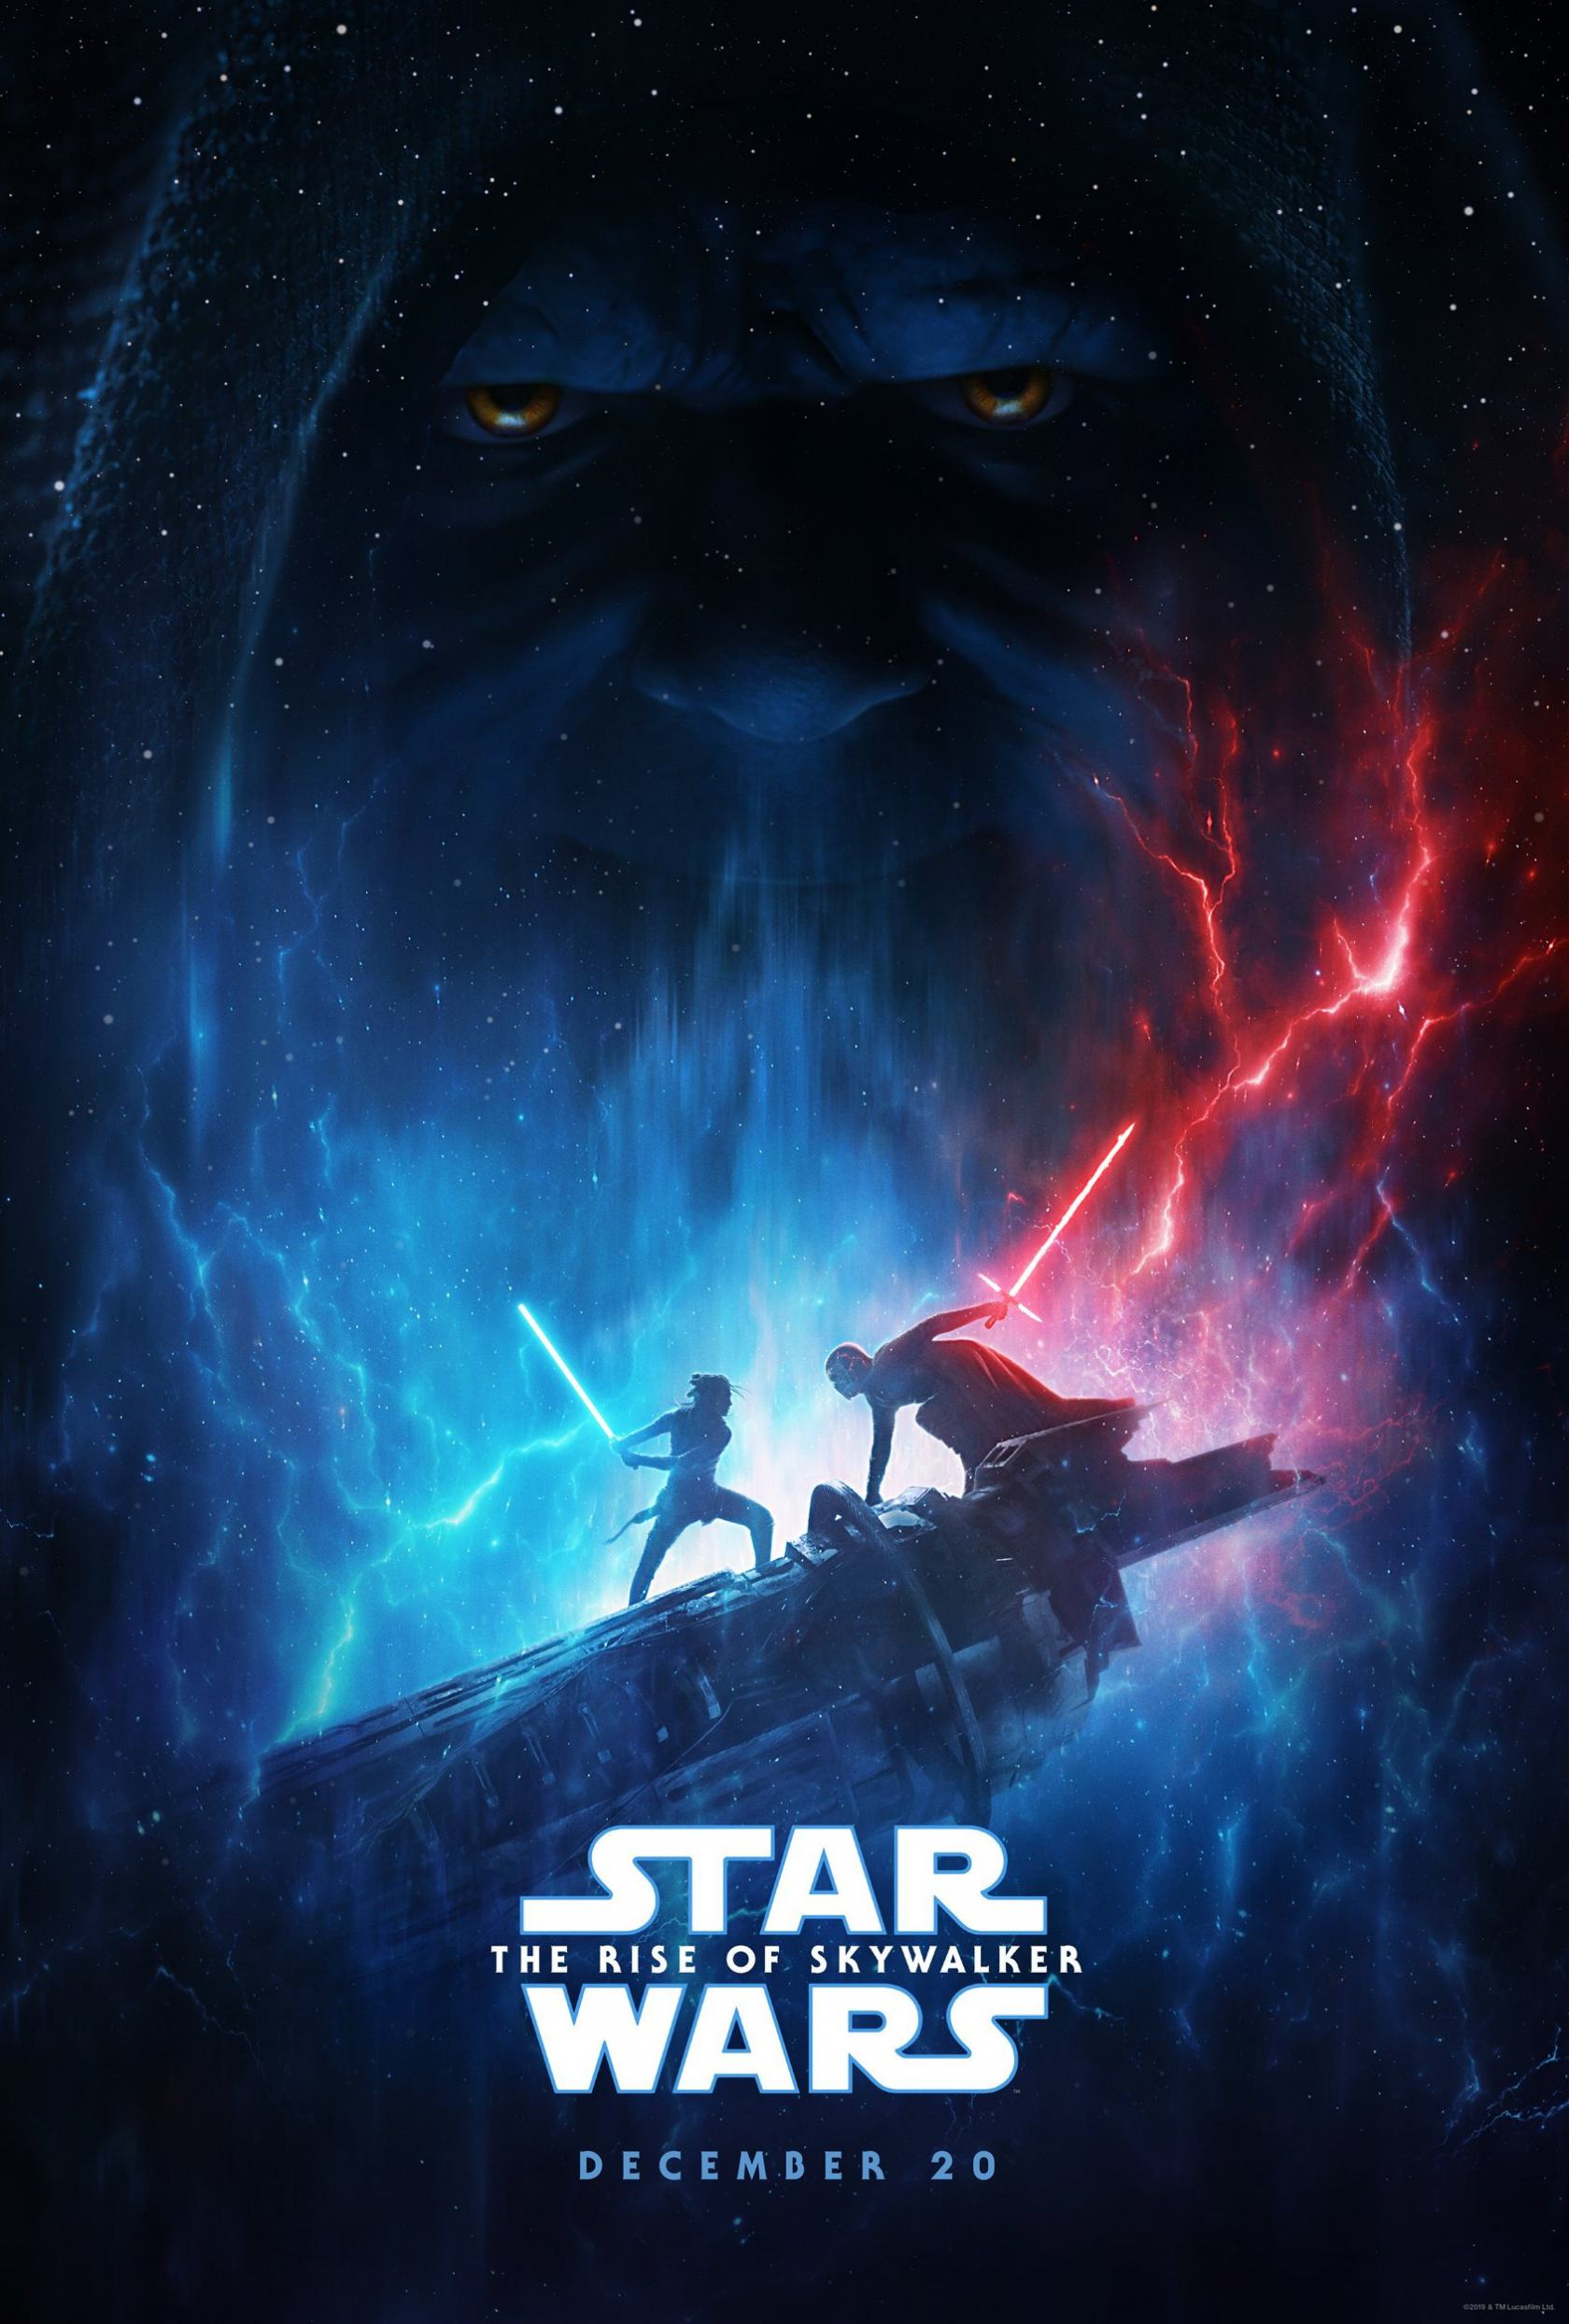 Star Wars: The Rise of Skywalker Poster #2